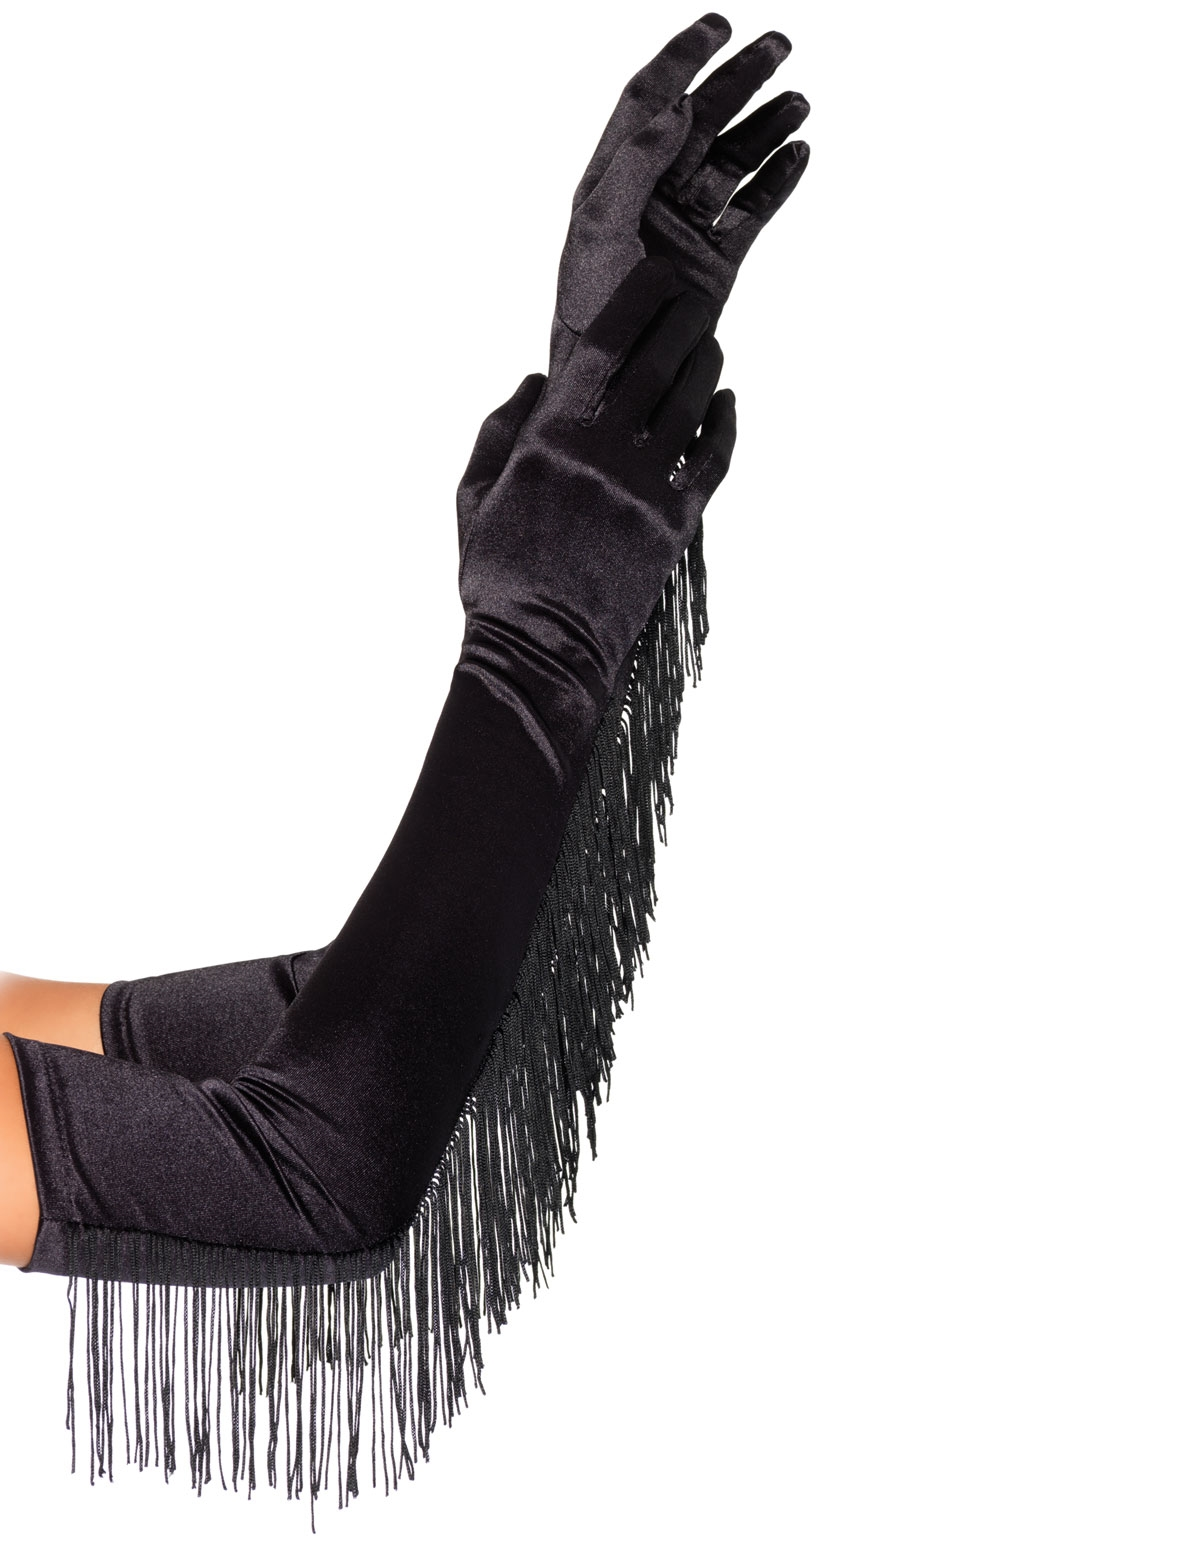 Satin Fringe Gloves